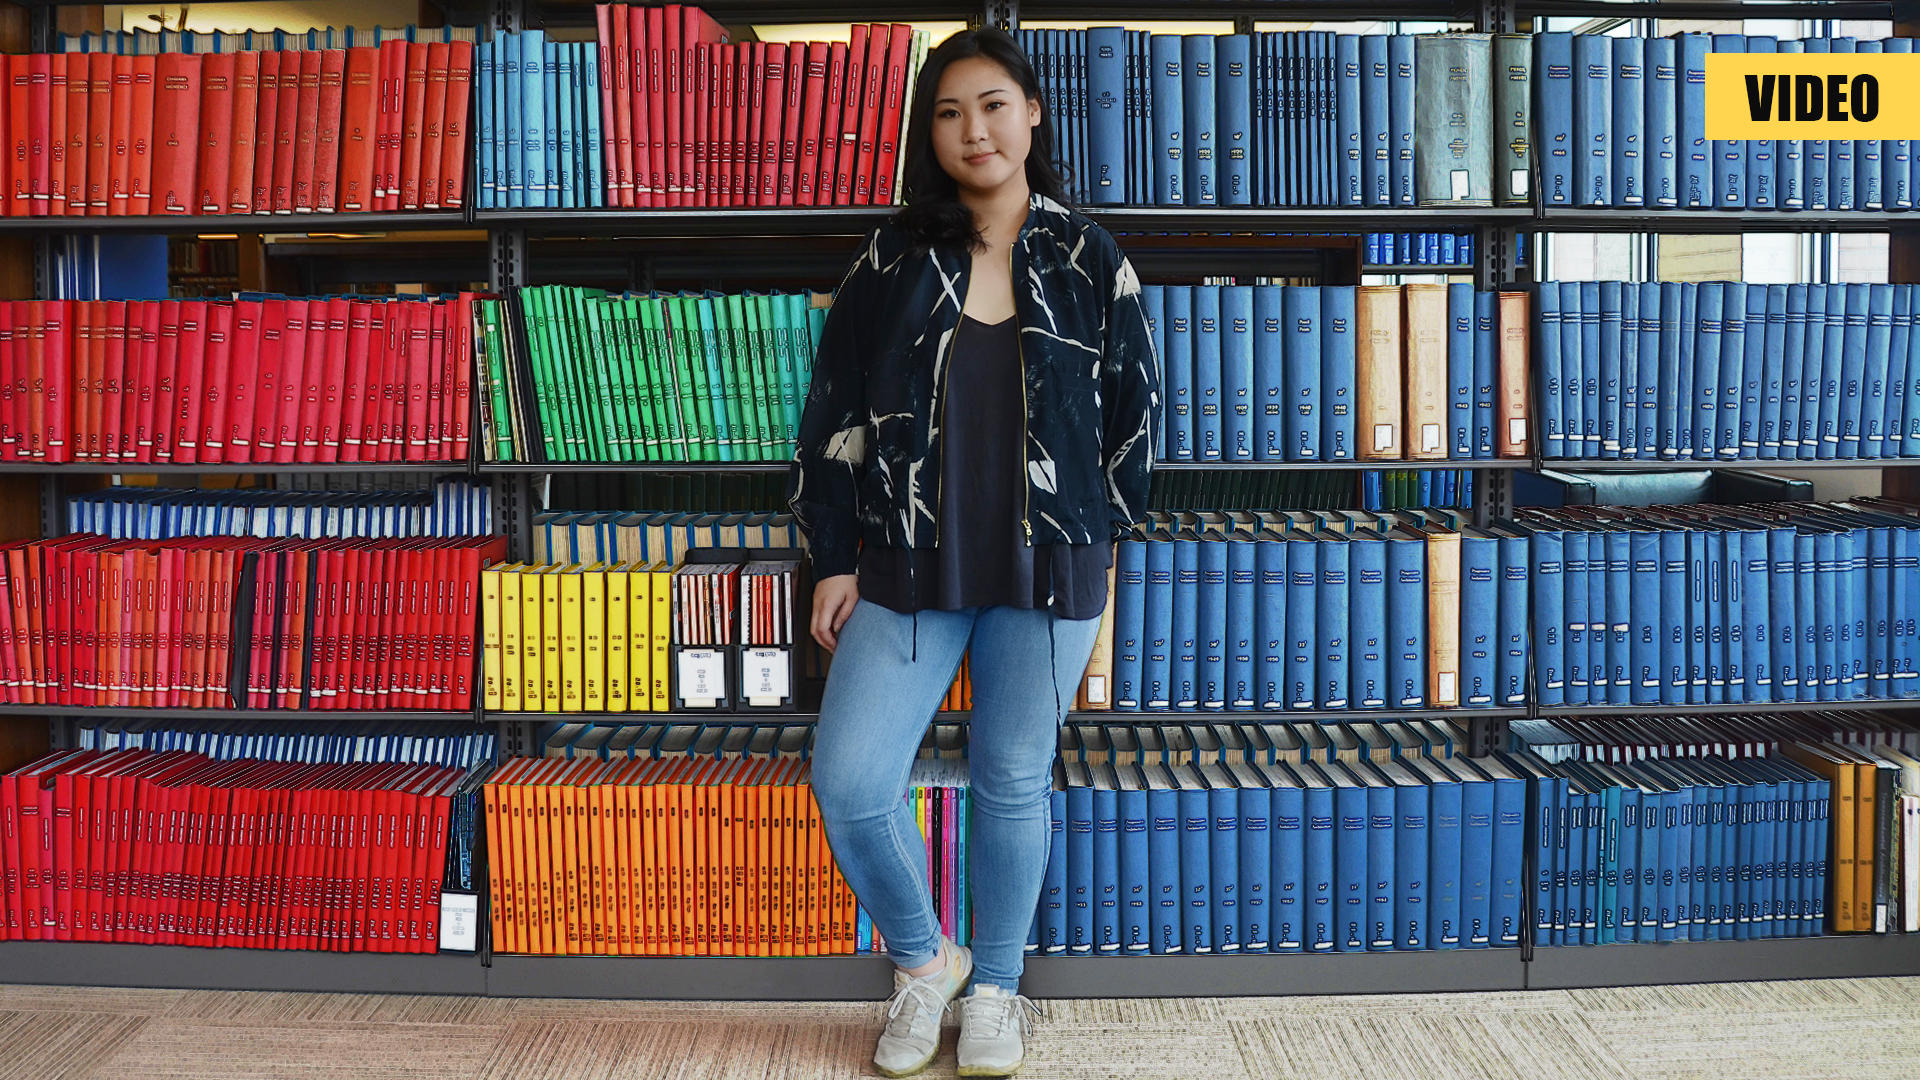 Kathleen in front of library books